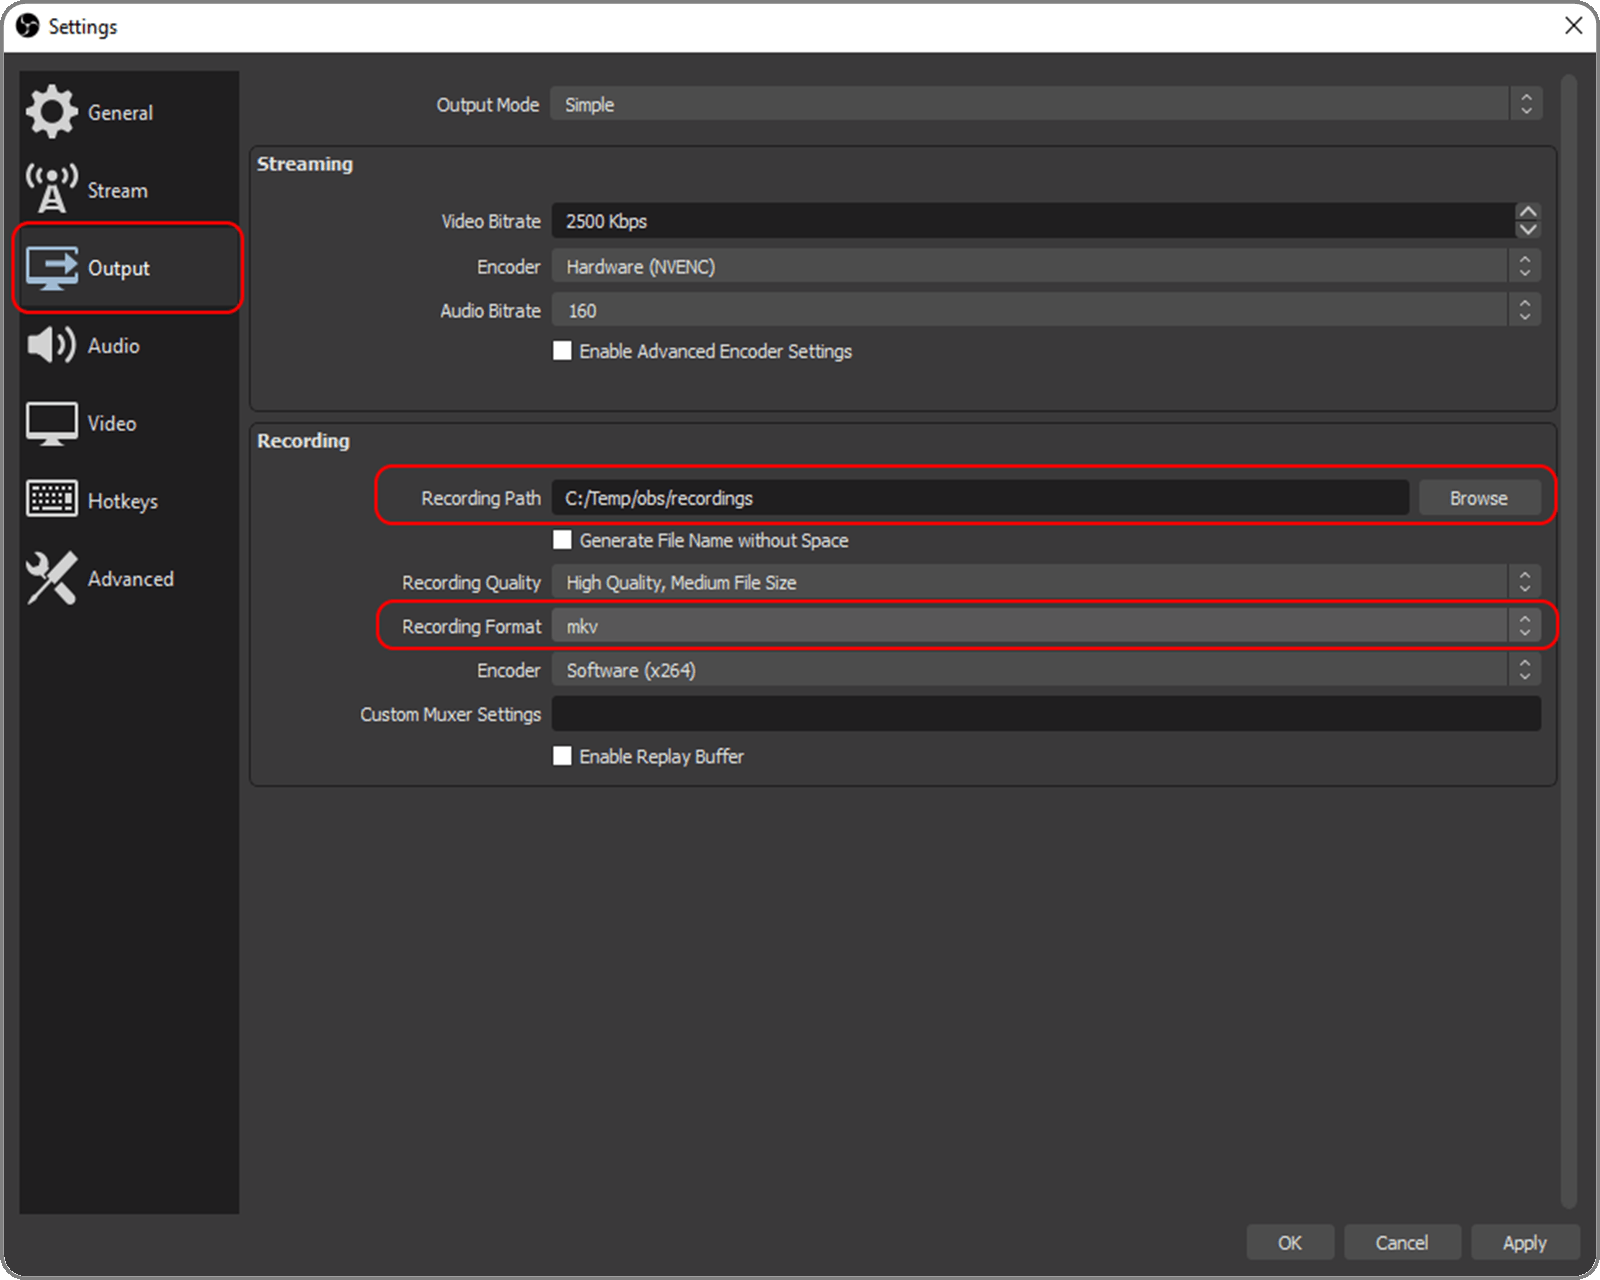 obs_03_settings_output.png